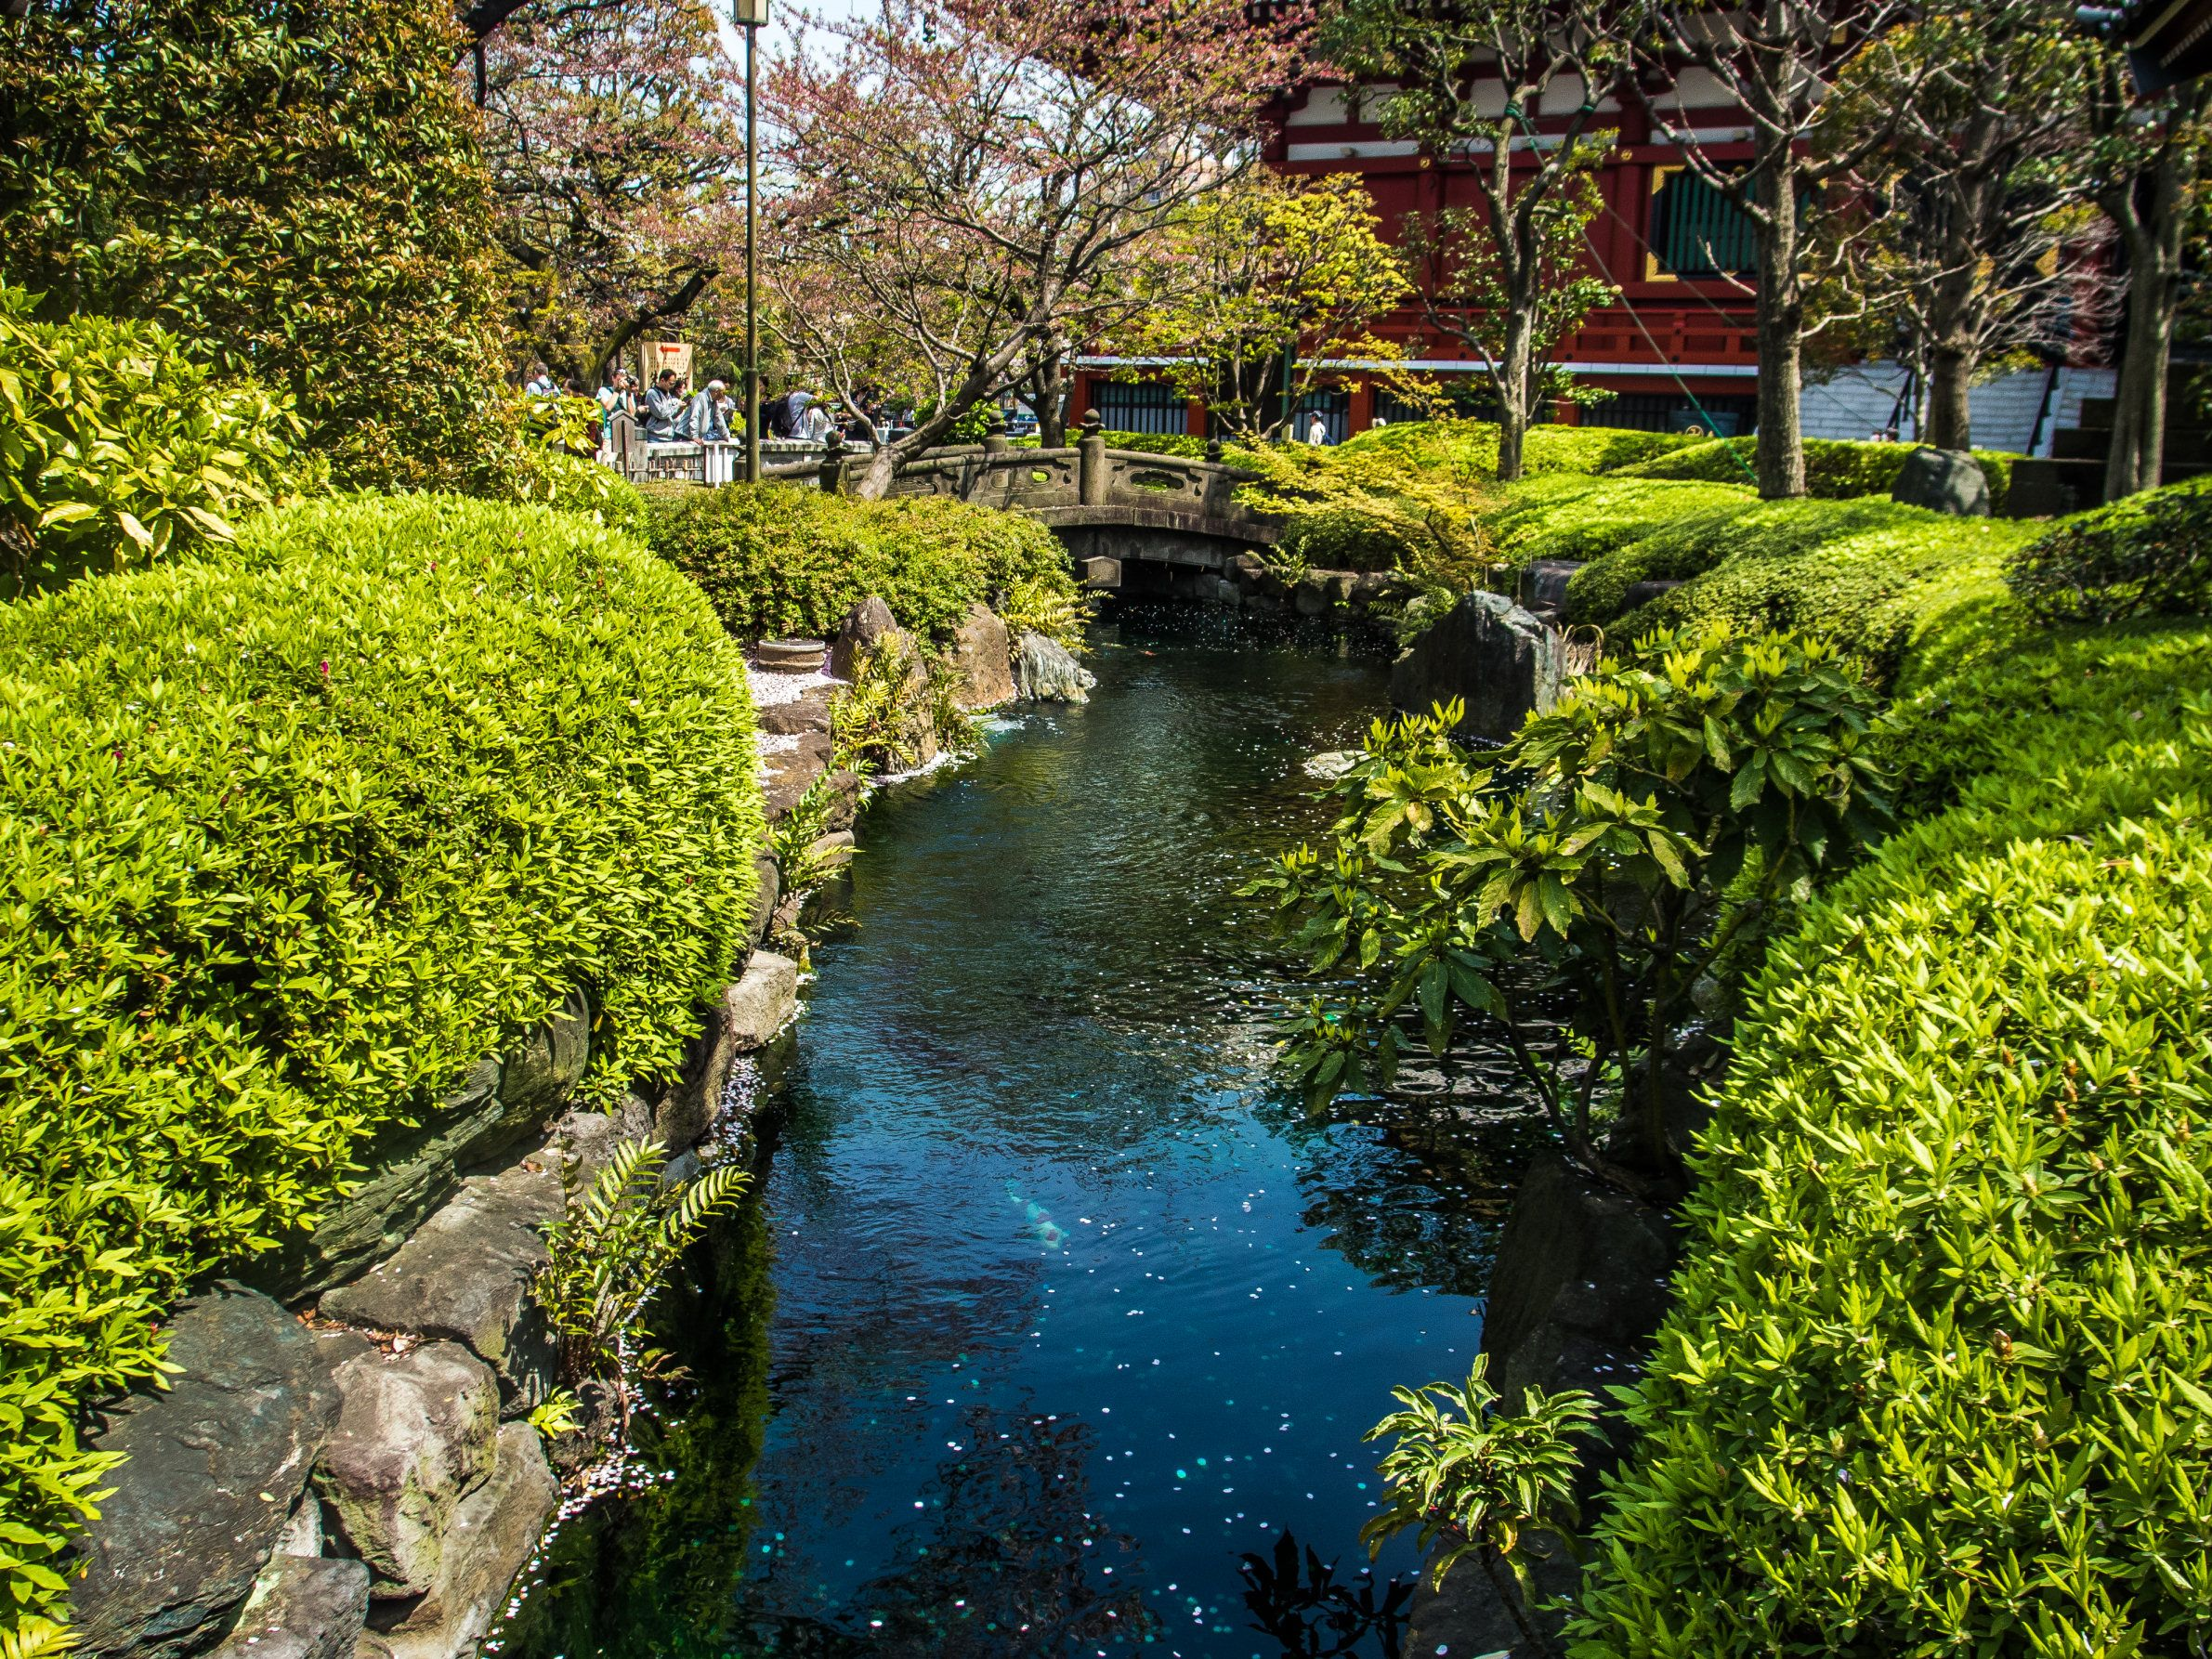 Cherry blossom petals have started to fall in the brook running through the small park of Yakushido Hall, one of the temples dotting Sensoji Temple's grounds, Asakusa's main attraction. (Sensoji's side is visible in the back.) #Asakusa, #Sensoji, #Yakushido, #brook, #cherry, #blossom April 9, 2016 © Grigoris A. Miliaresis